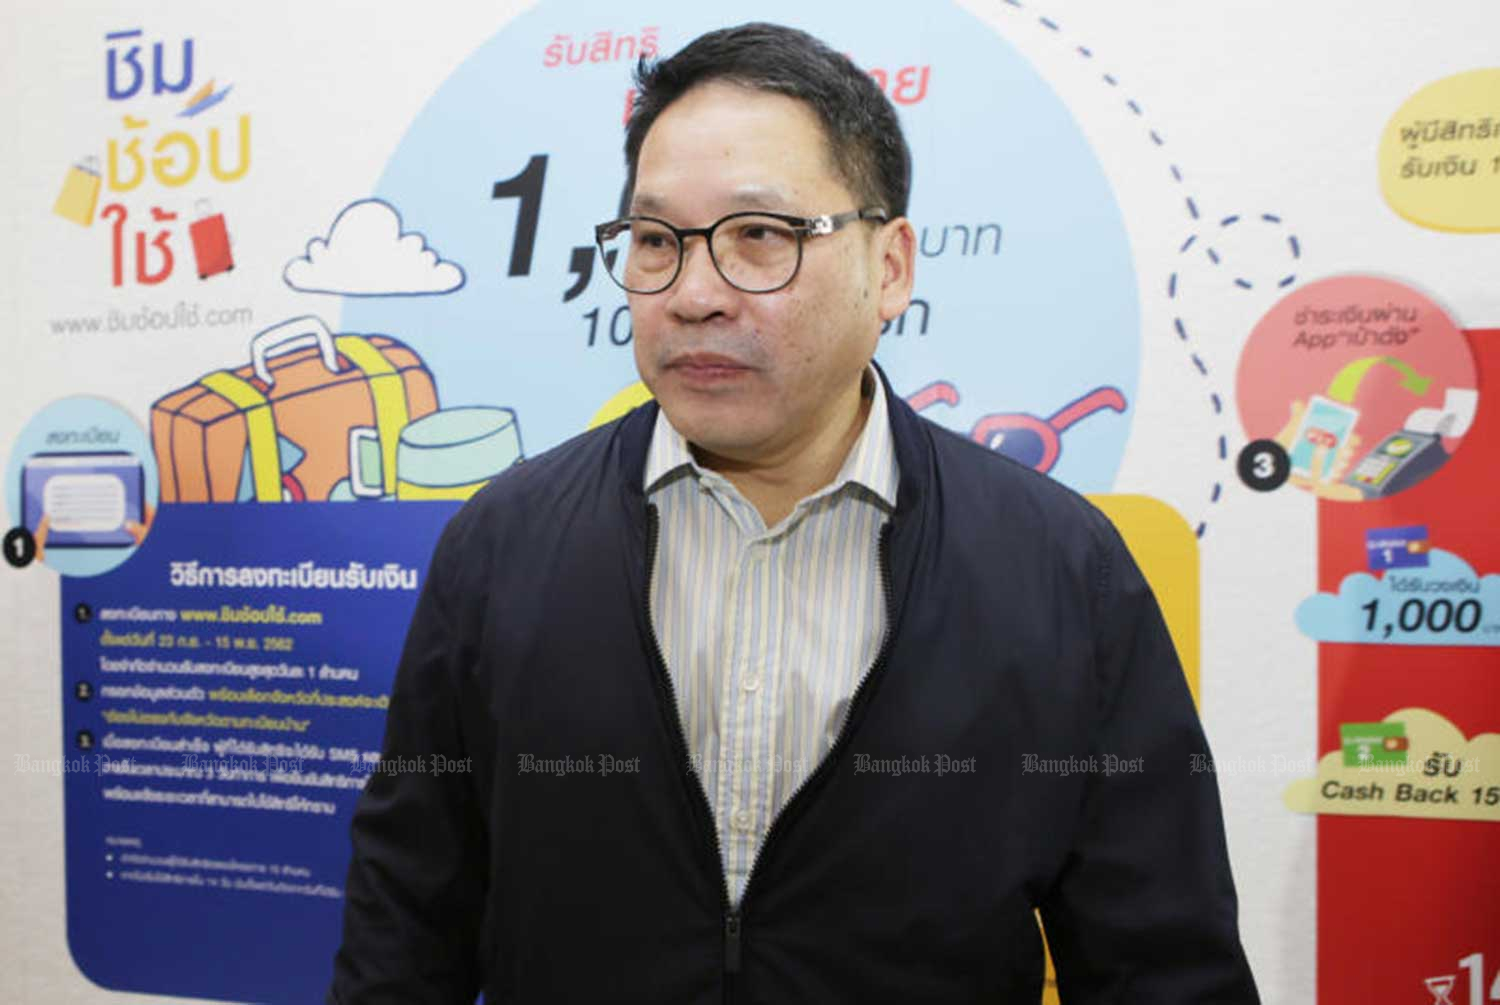 Finance Minister Uttama Savanayana promoted the cash giveaway and rebate at the Finance Ministry in September. (File photo)